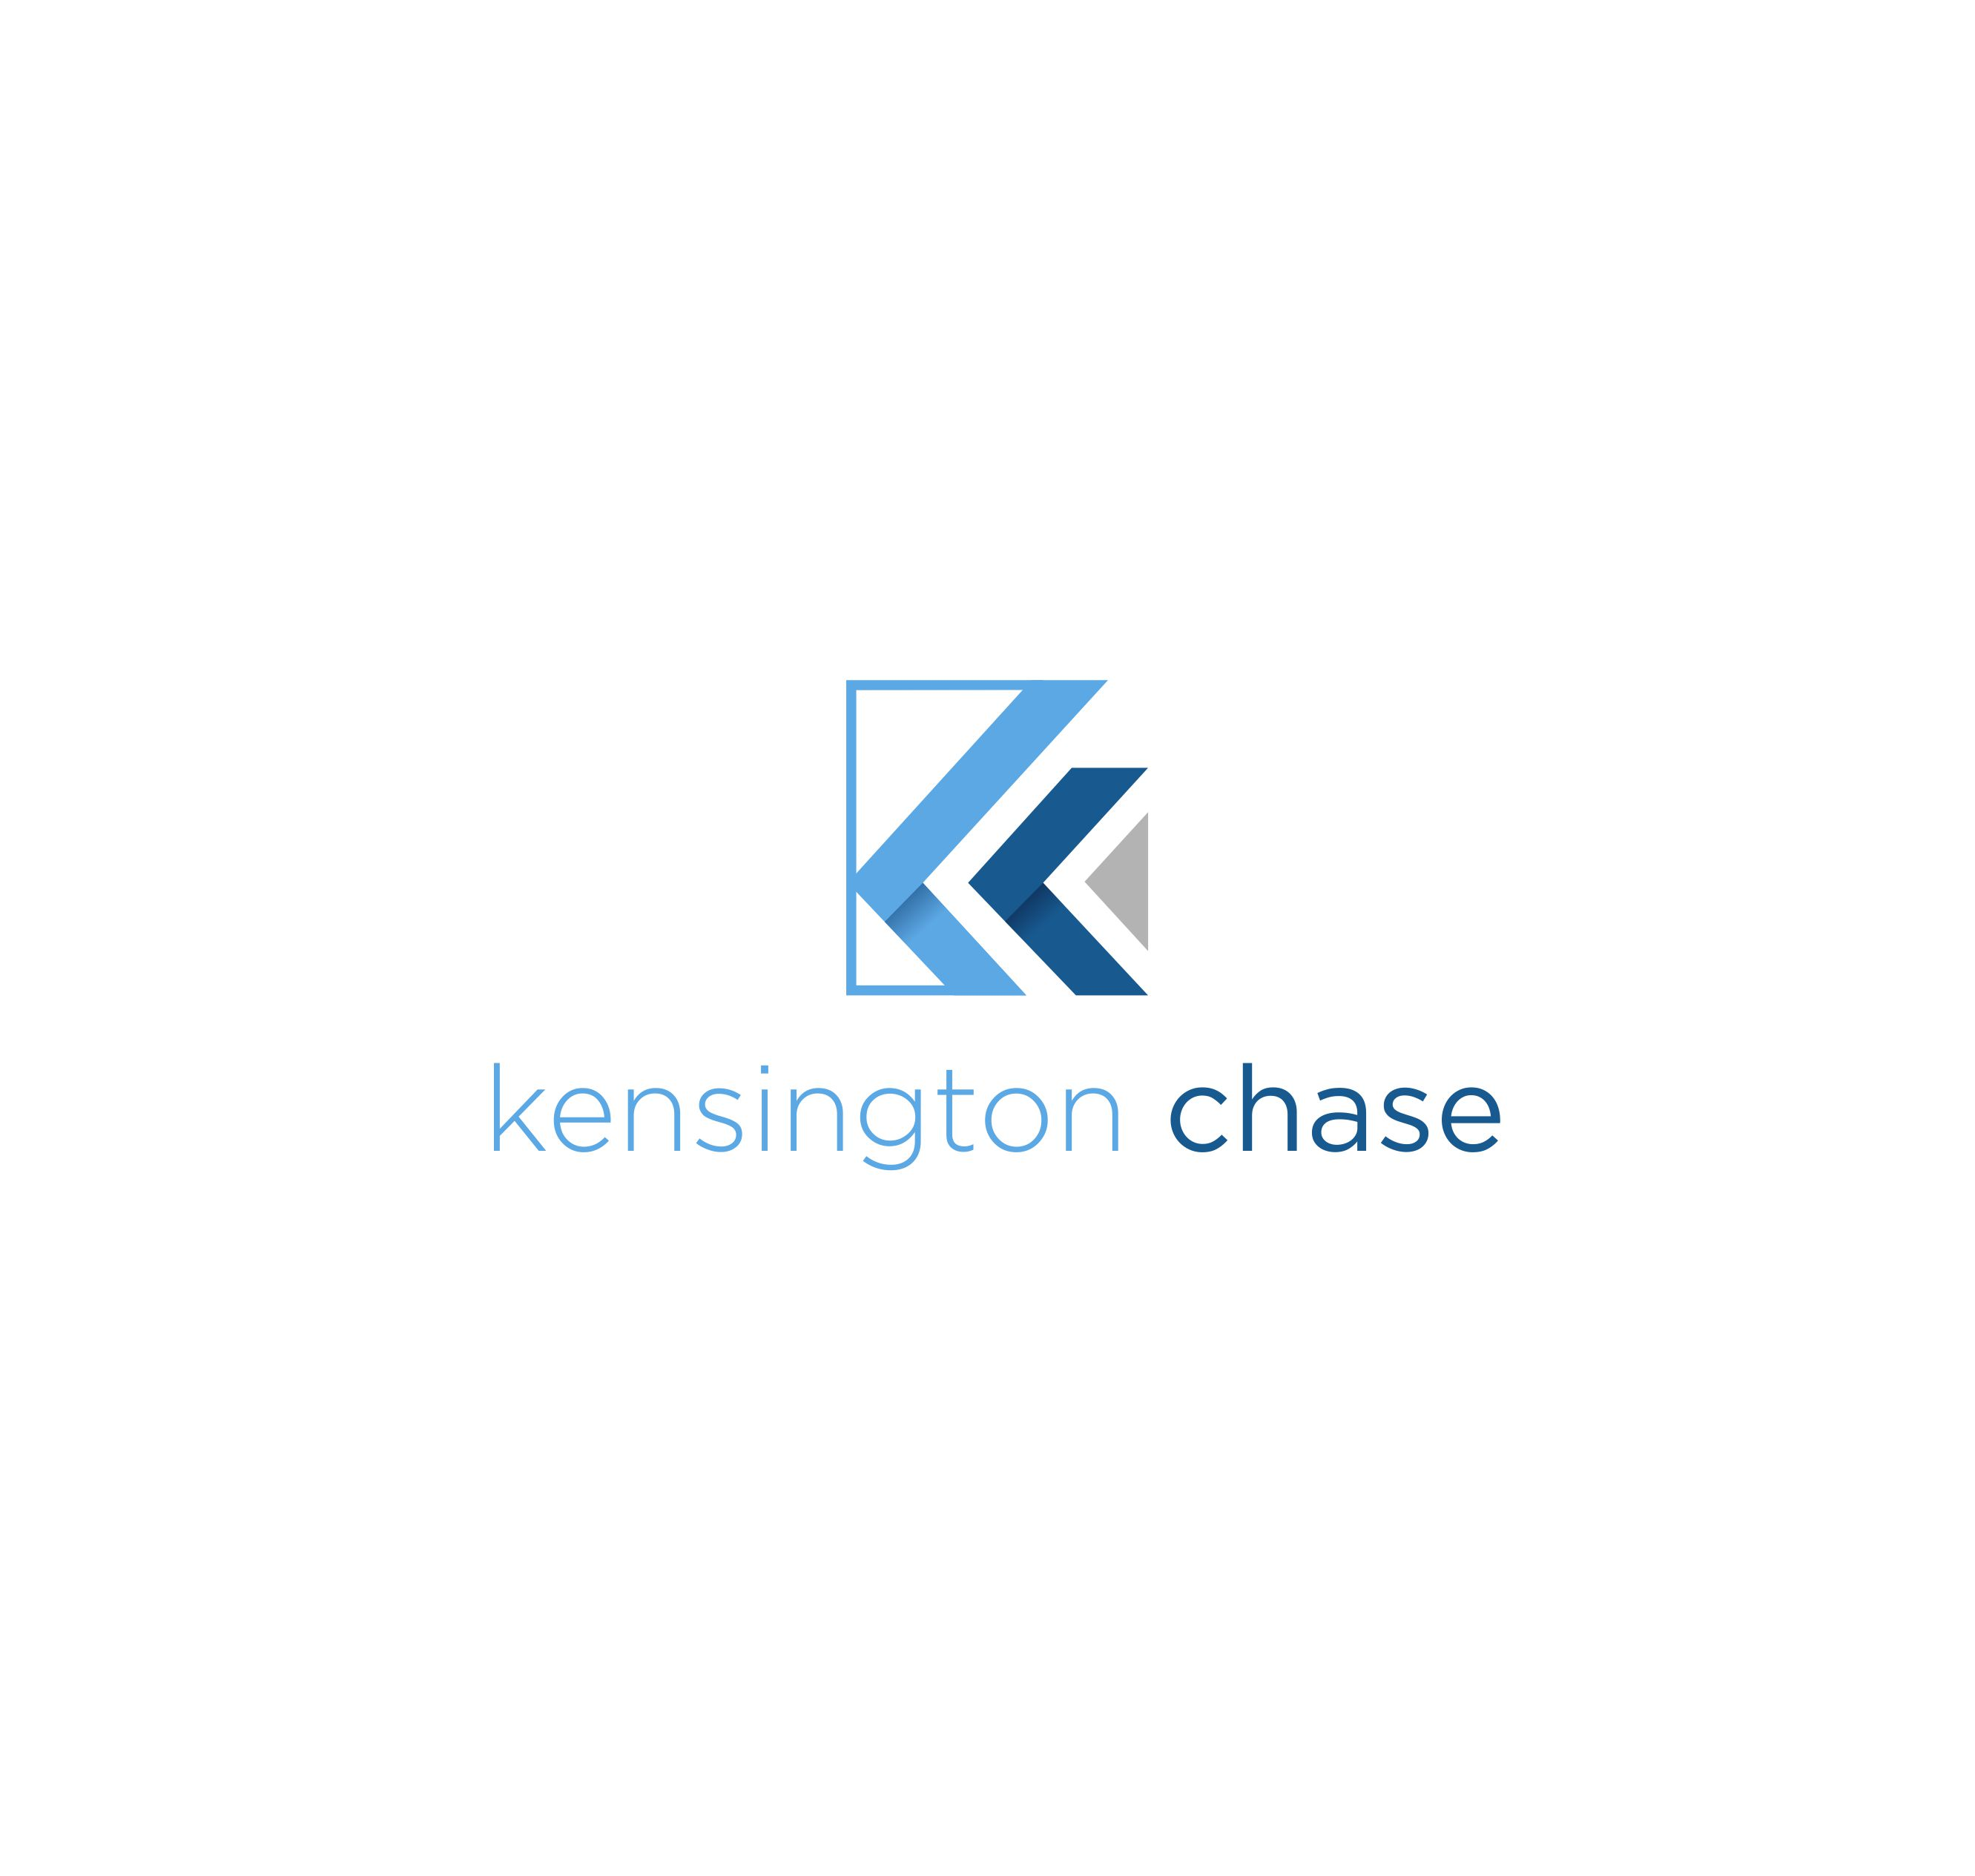 Logo Design by Raymond Garcia - Entry No. 122 in the Logo Design Contest Kensington Chase  Logo Design.